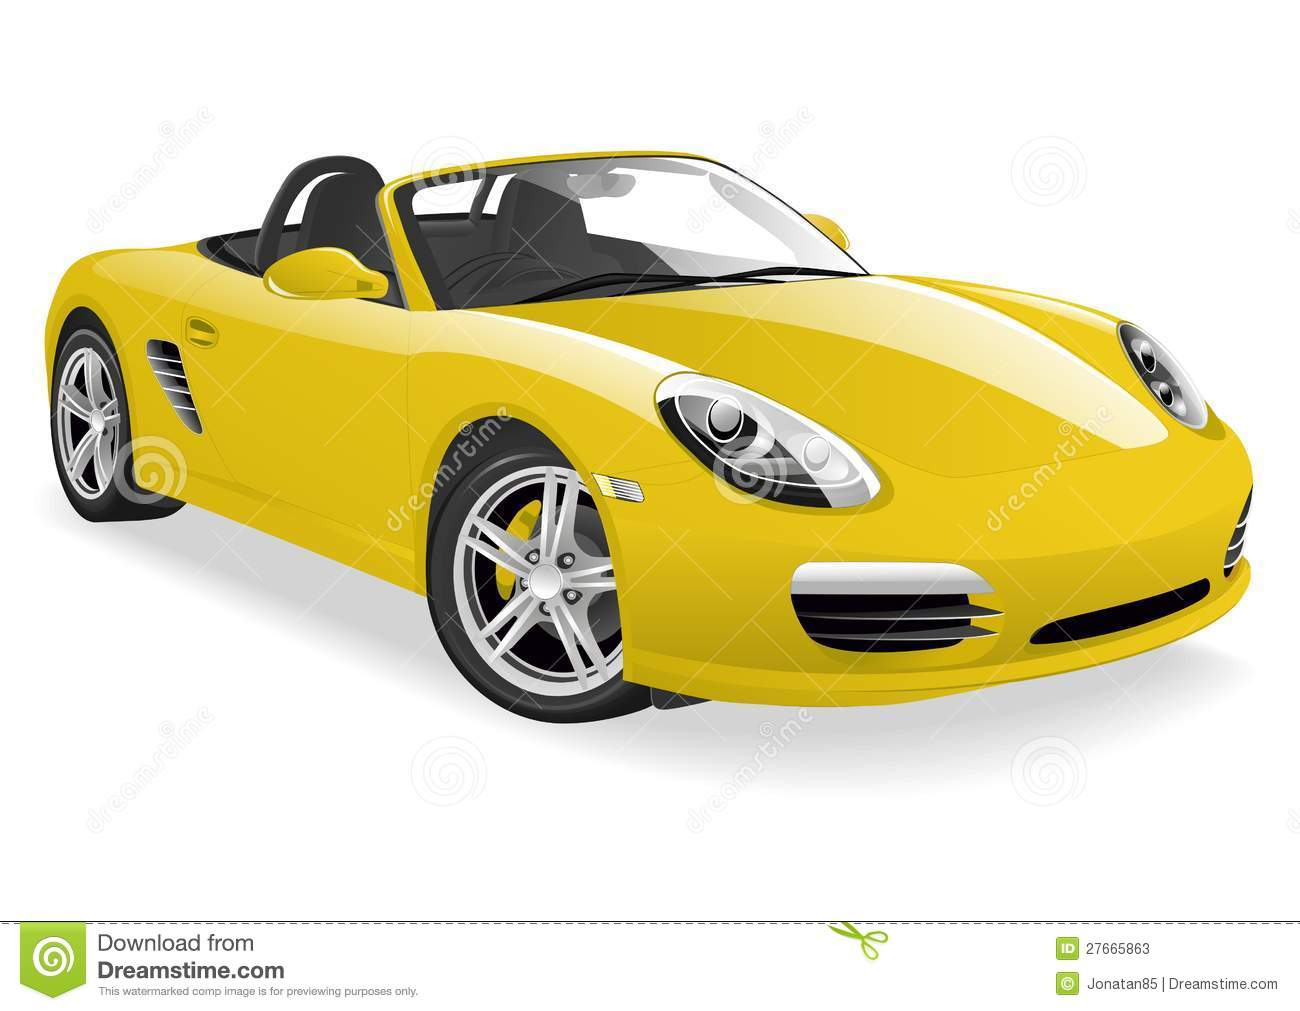 vehicle yellow sports car - photo #25